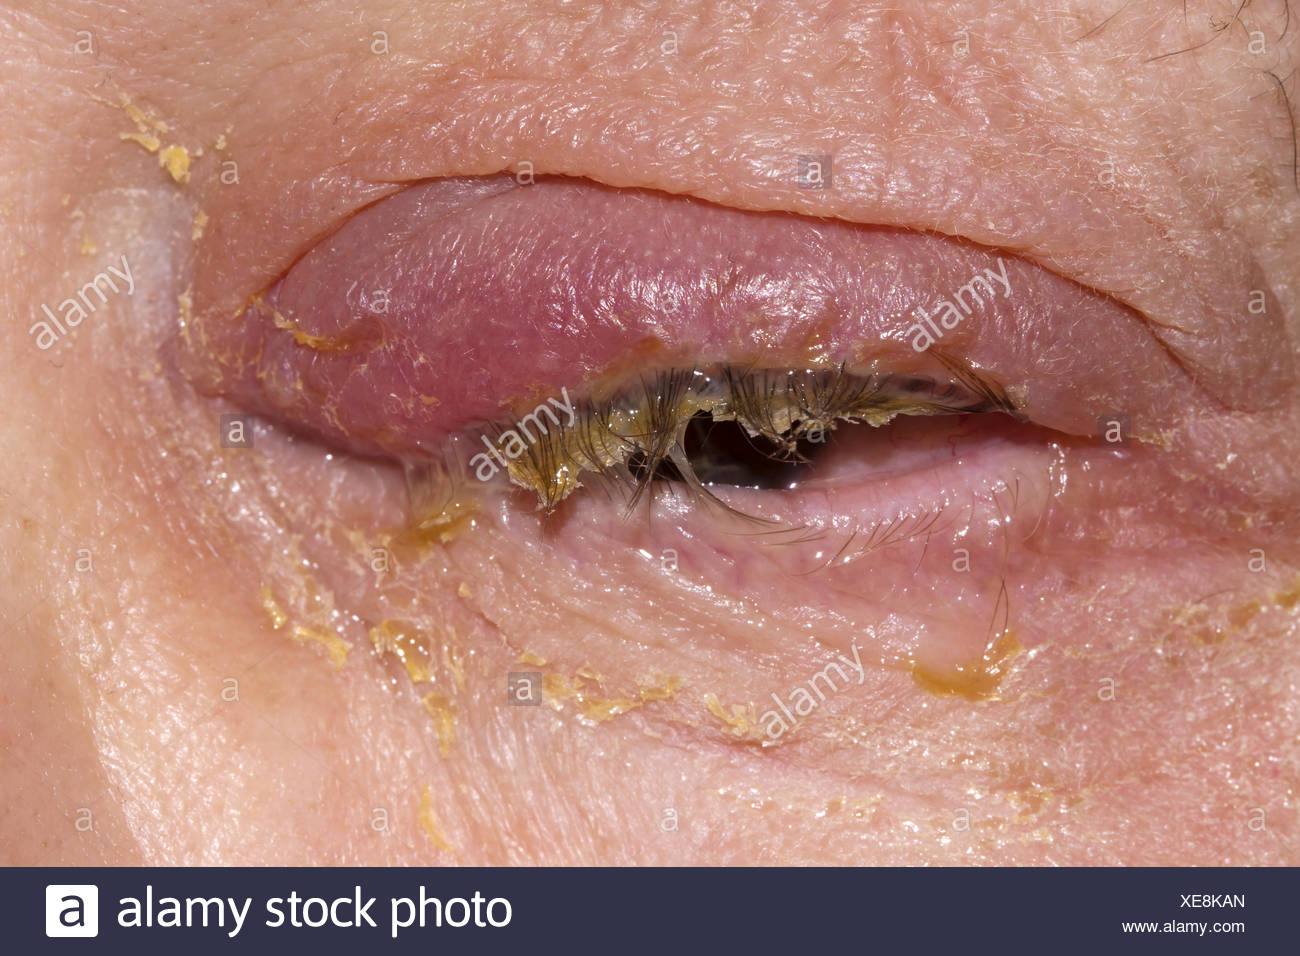 Infection Photo Stock